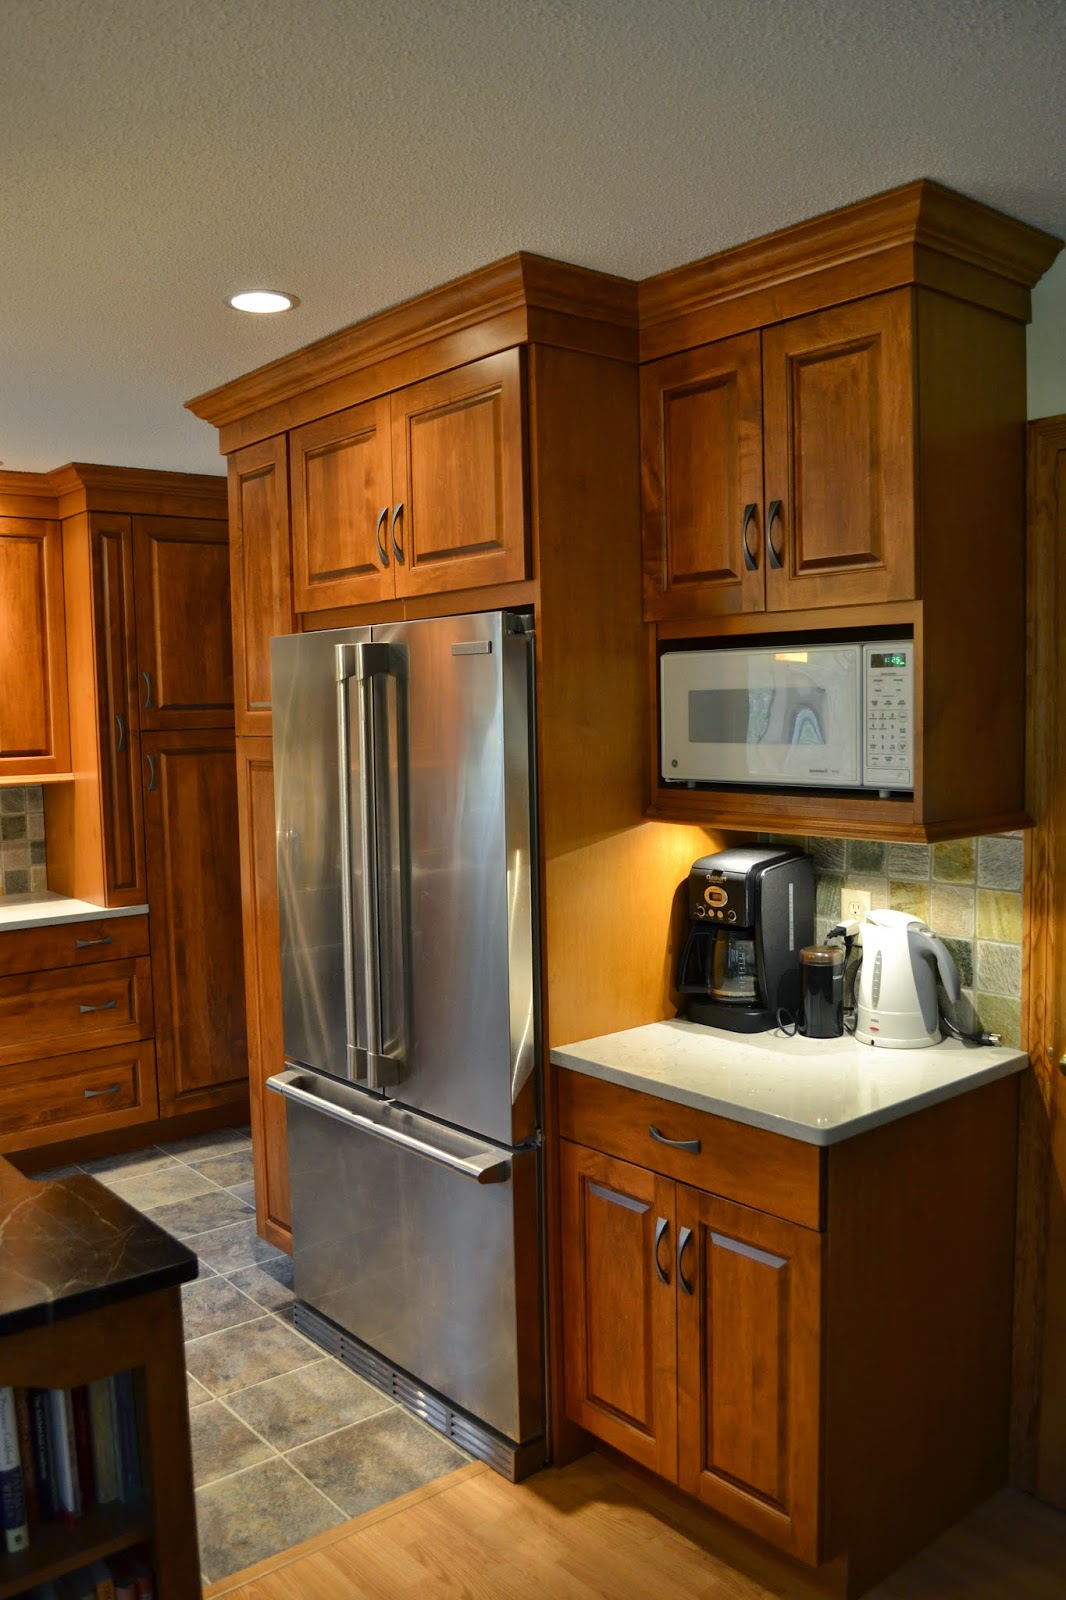 Kitchen Bathroom Remodeling Tips You Will Love Microwave Wall Cabinet In